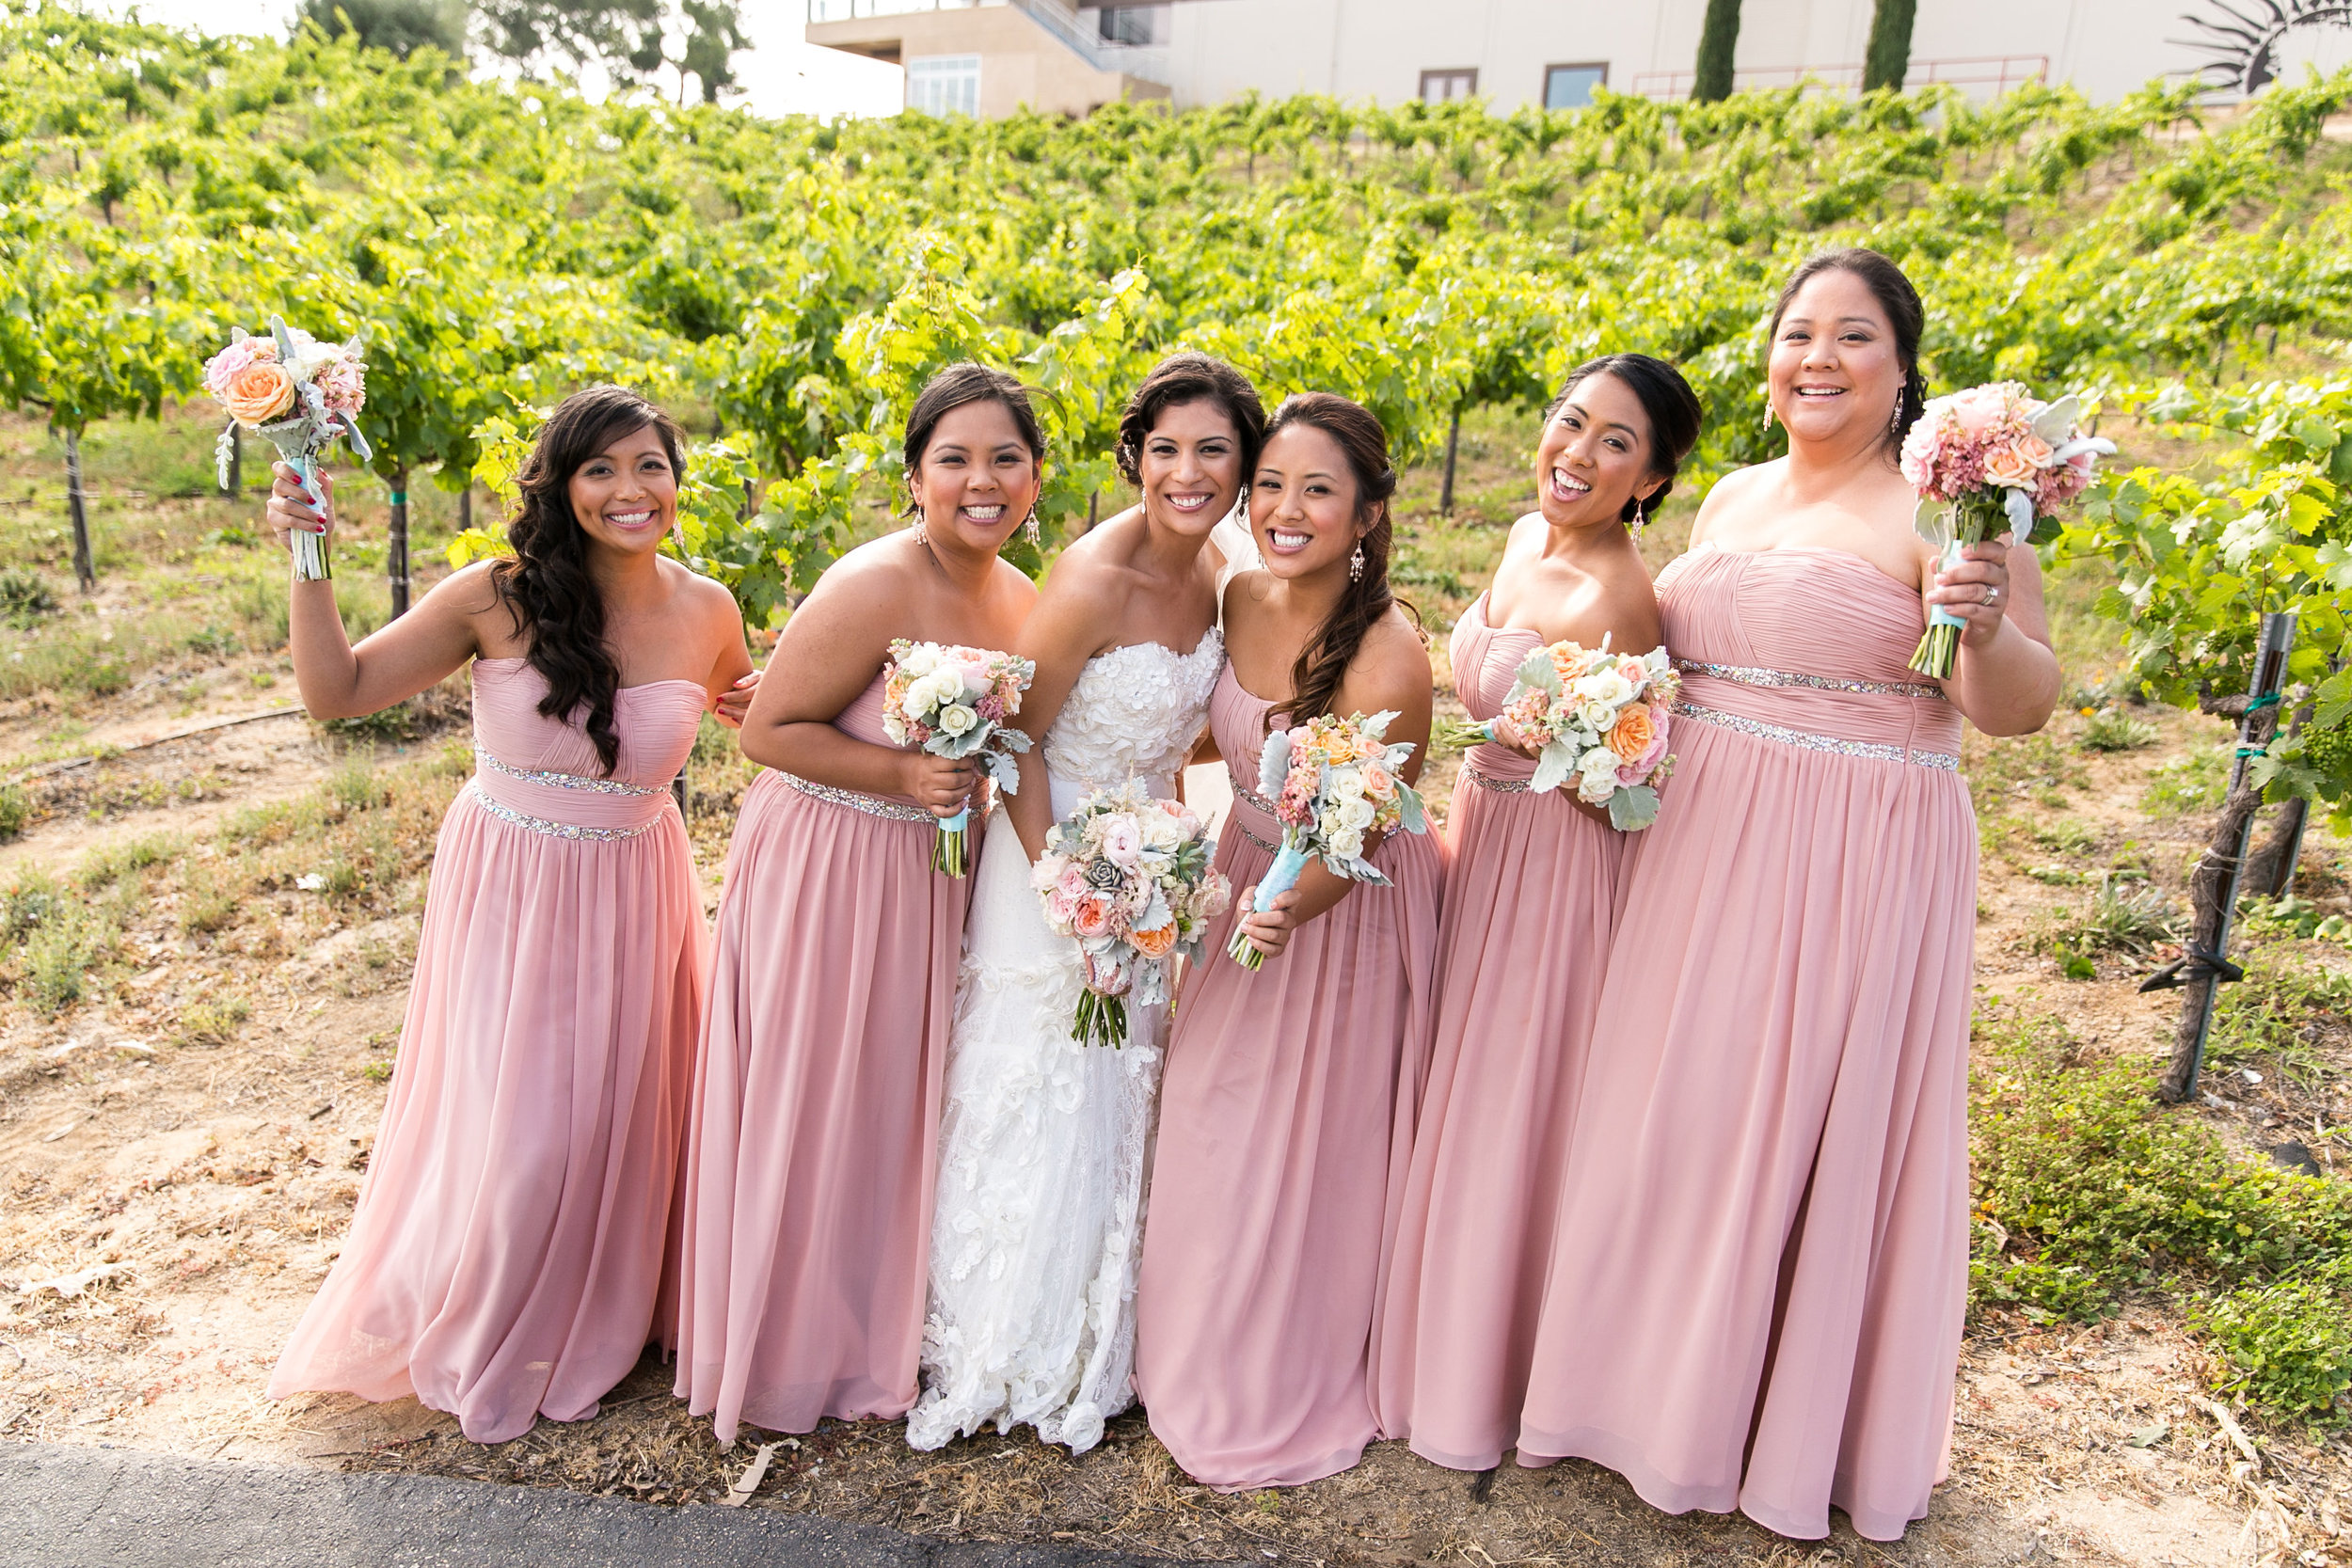 Temecula Wedding Hair and Makeup | Southern California Wedding | Callaway Winery Wedding